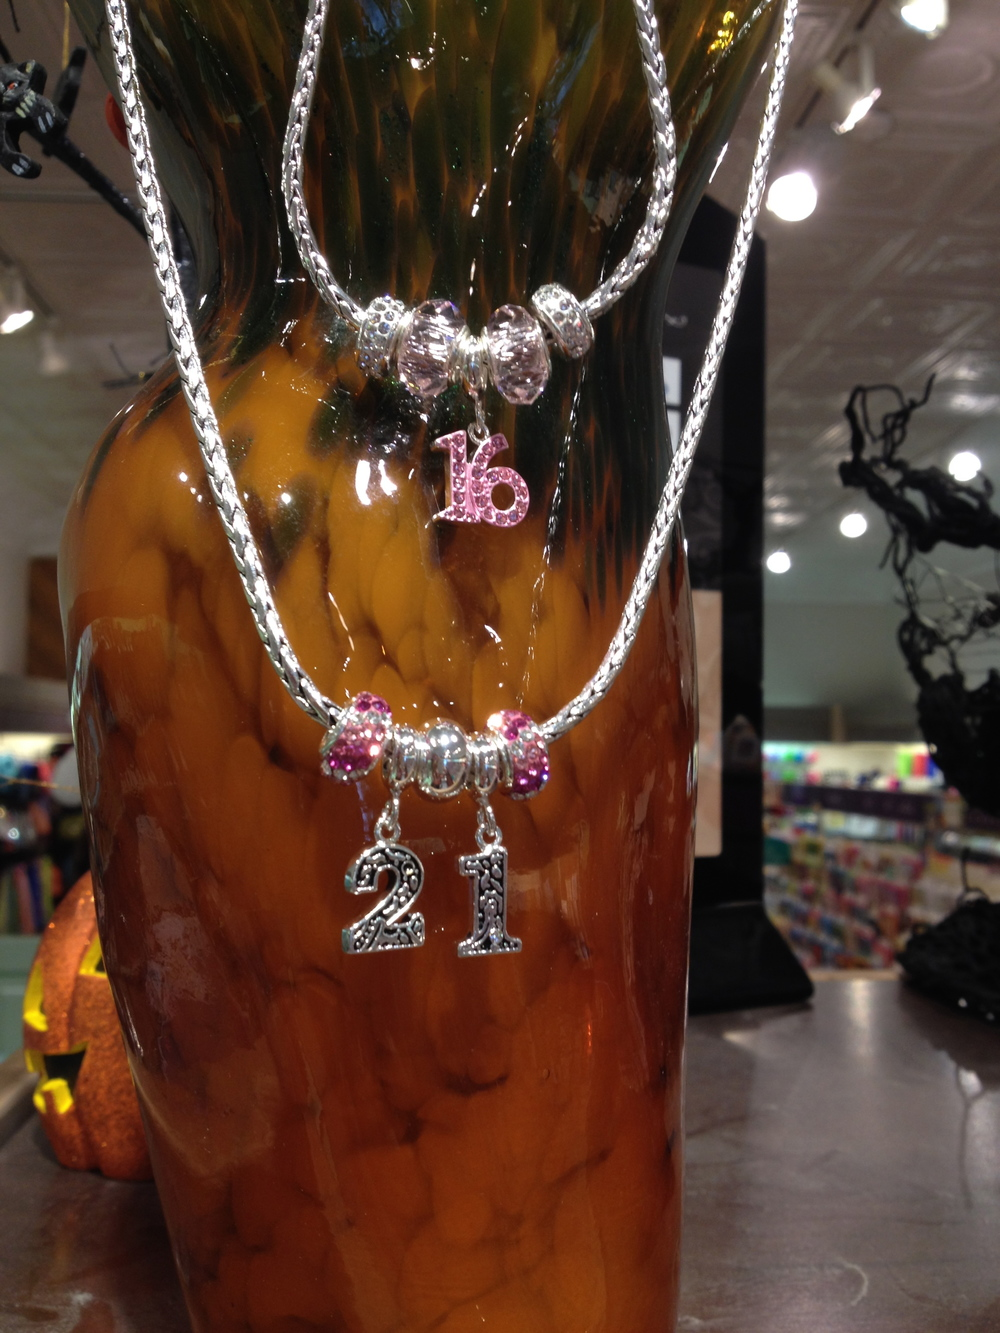 Numbers or Letters for Charms are perfect for that memorable day!